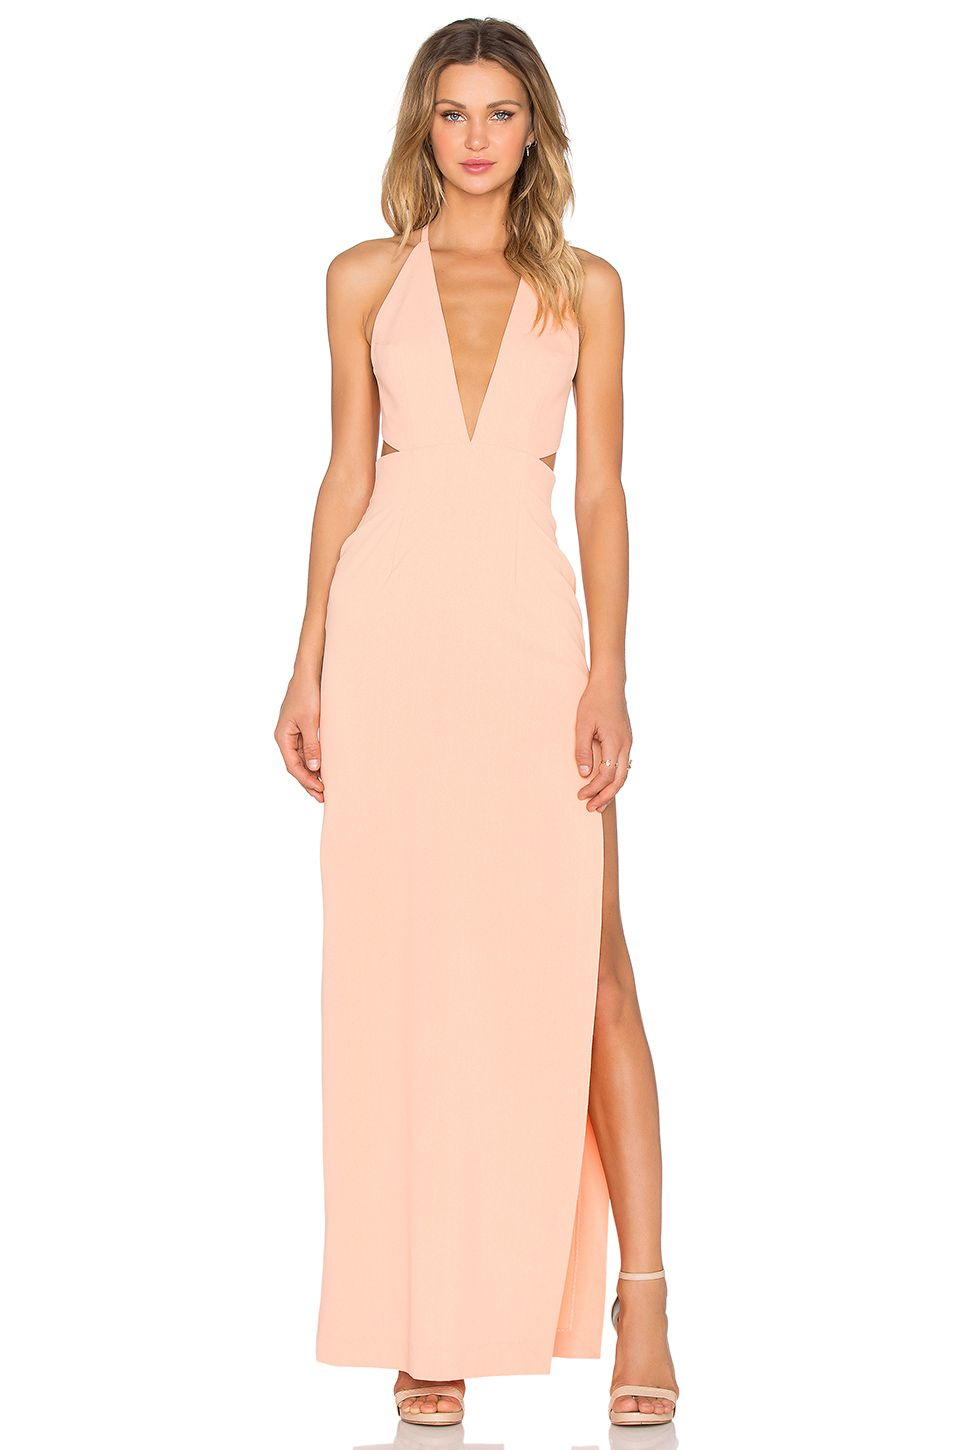 SOLACE London Hall Maxi Dress in Peach | Down to the ground | Pinterest